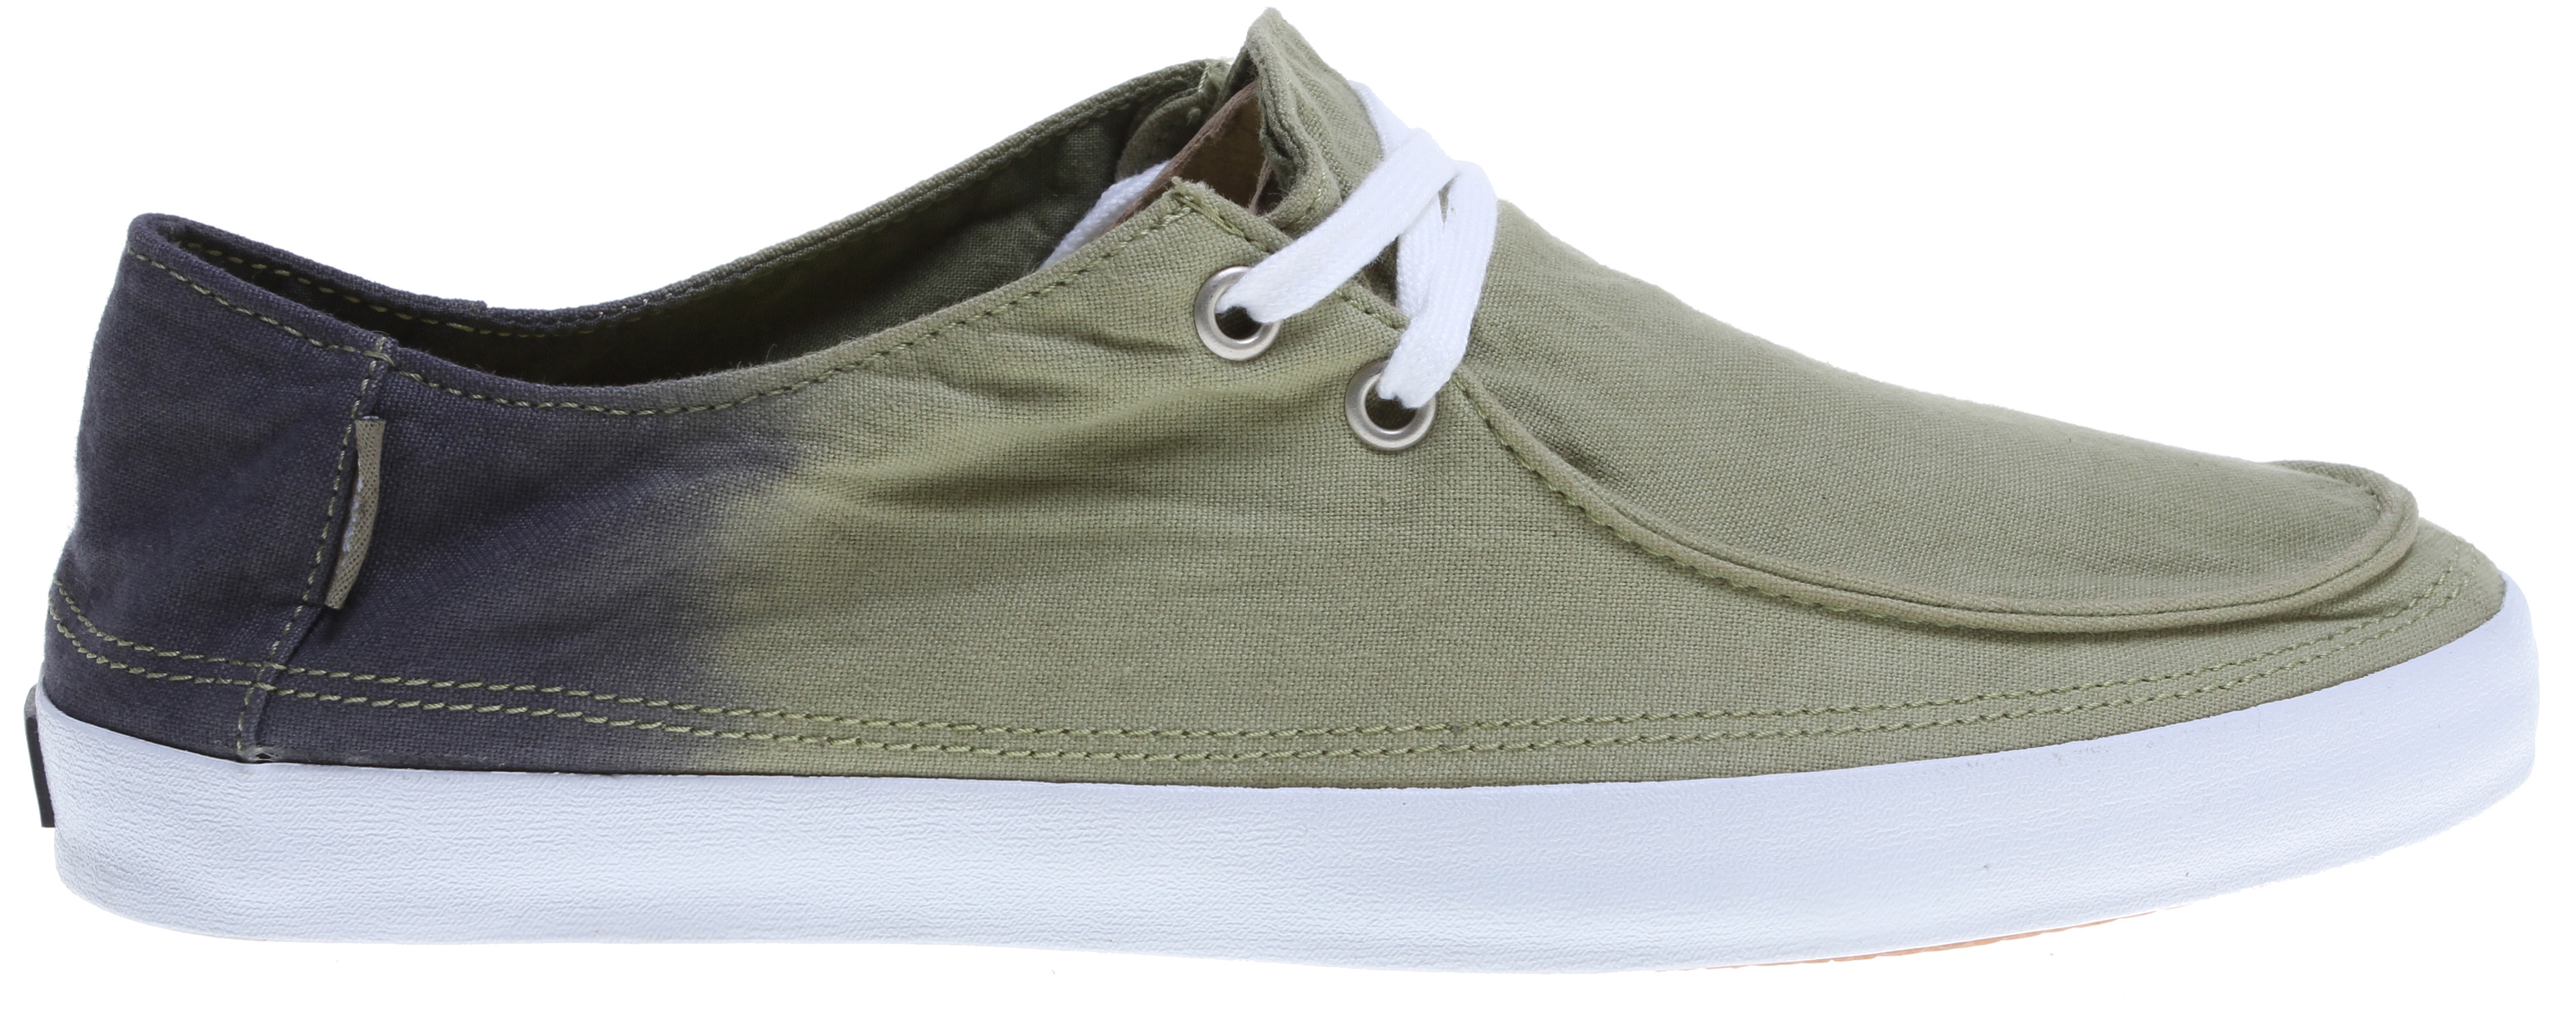 Skateboard Key Features of the Vans Rata Vulc Skate Shoes: Hemp, Recycled pet or canvas uppers Super comfy vanslite footbed Flexi vulc gum rubber outsole Water-based inks and glues Classic fit style - $34.95